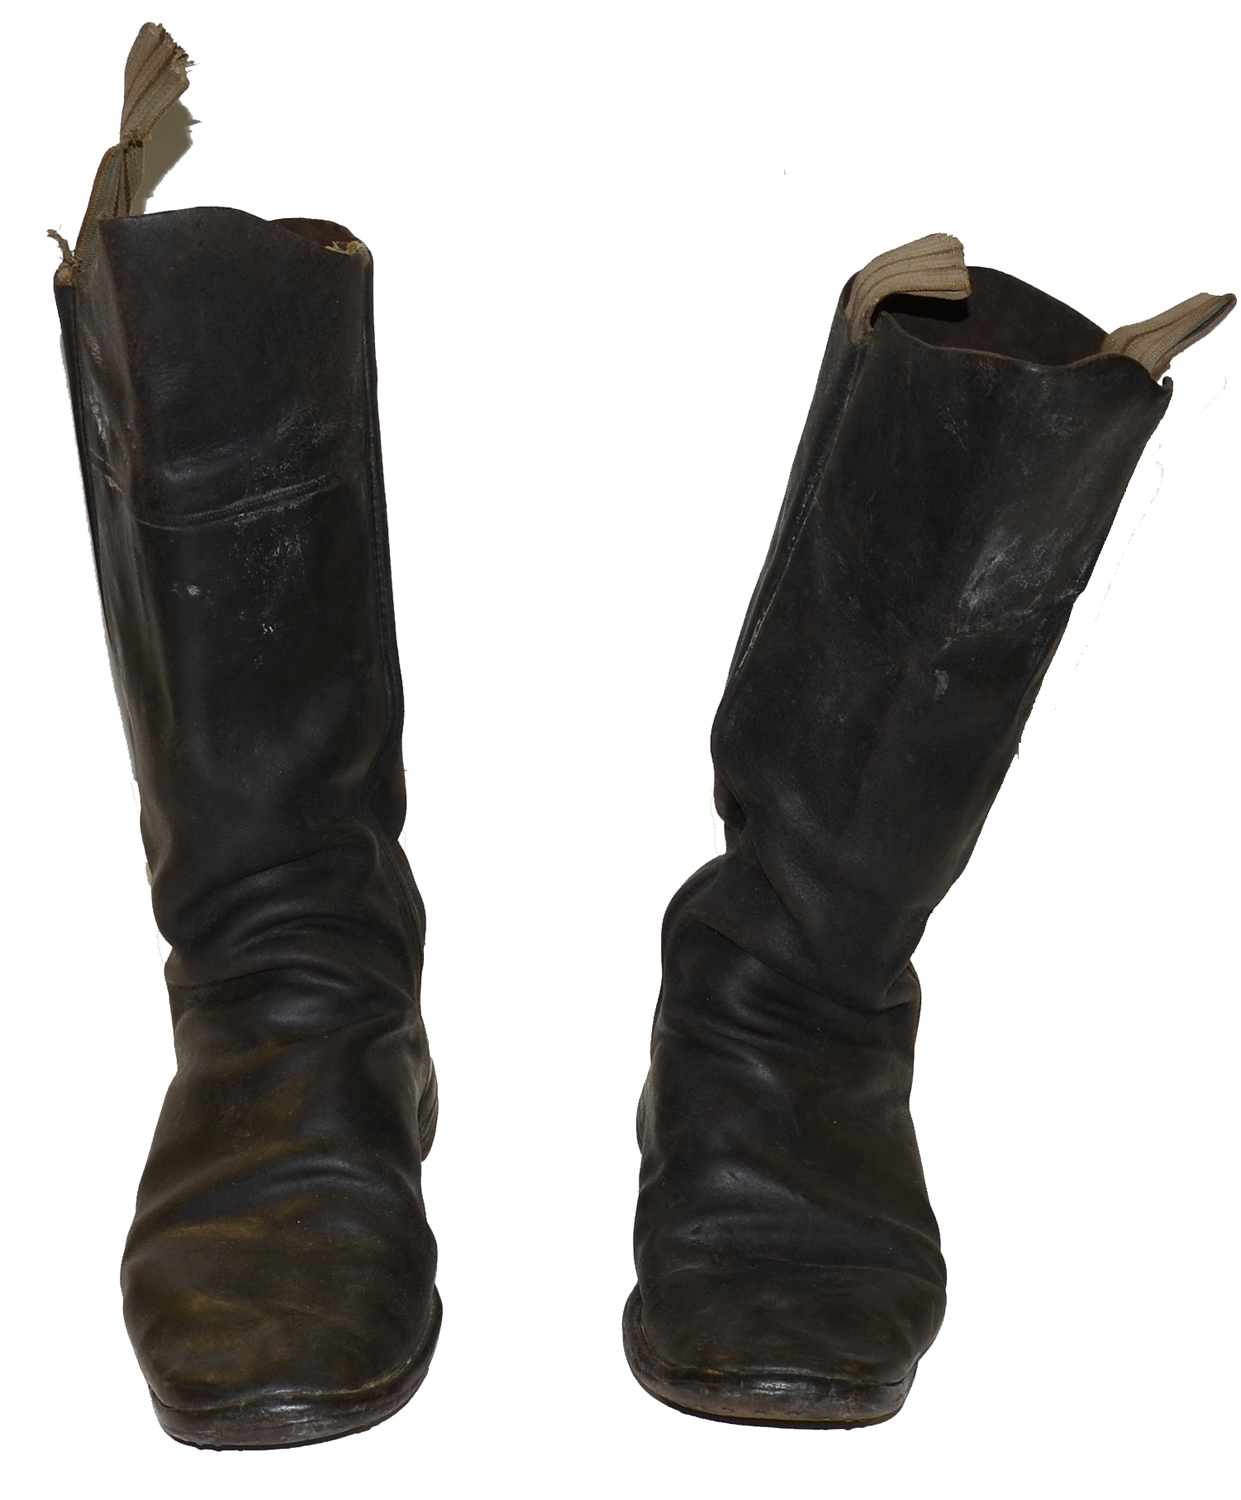 CIVIL WAR ERA BOOTS